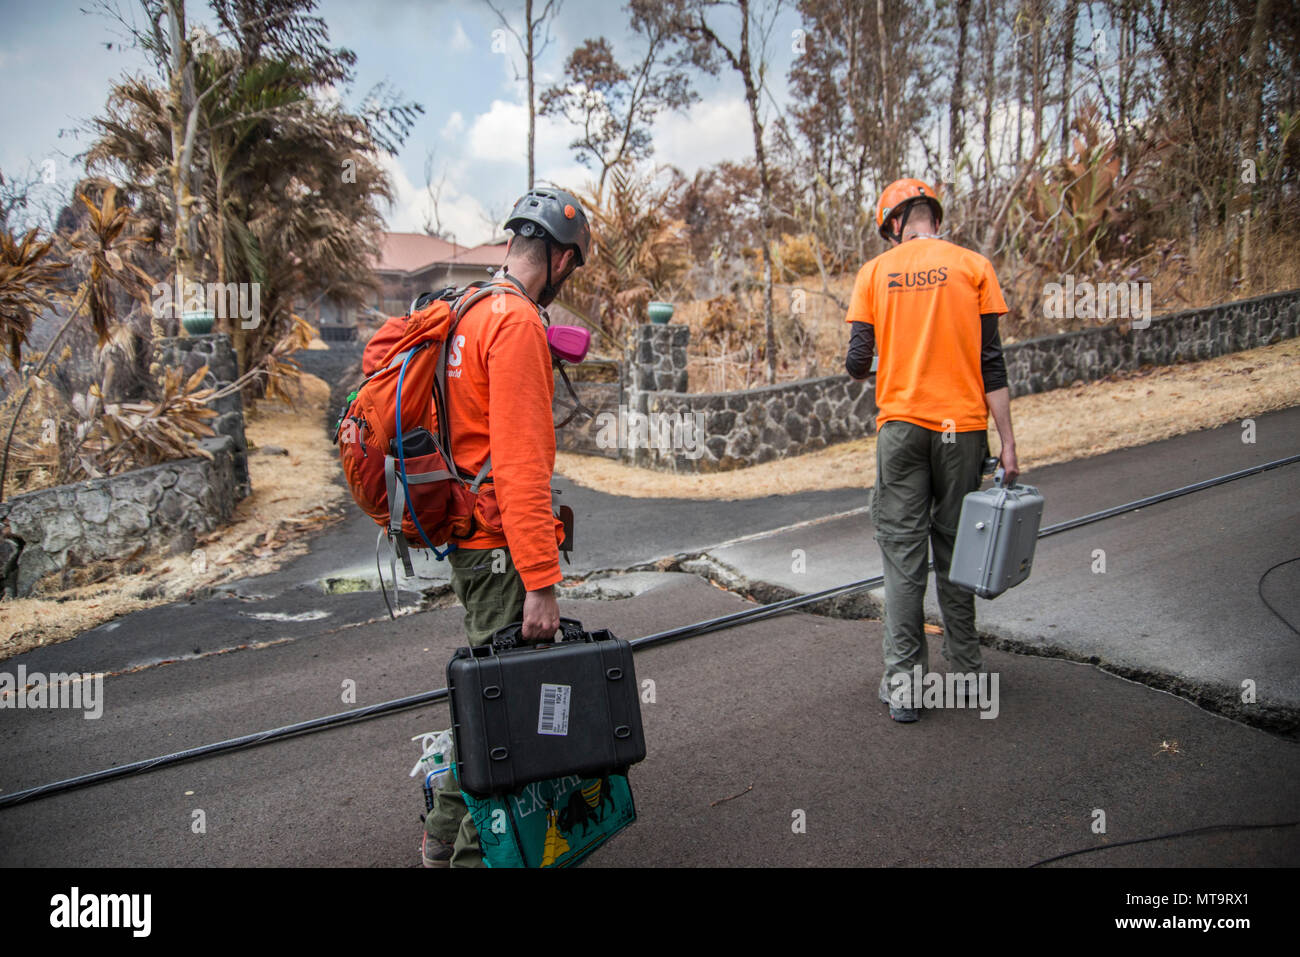 Pāhoa, Hawaii, May 19, 2018 – U.S. Geological Survey (USGS) volunteer Allen Lerner (left) and USGS Research Scientist Christoph Kern (right) prepare to use sulfur dioxide (SO2) sensors to monitor and test the air quality after the Kīlauea volcanic eruption. The residential area of Leilani Estates has been evacuated due to the high concentration of SO2 emitting from the cracks in the earth that spilled lava into the subdivisions. At the request of the state, FEMA staff are on the ground to support local officials with life-saving emergency protective measures, debris removal, and the repair, re - Stock Image